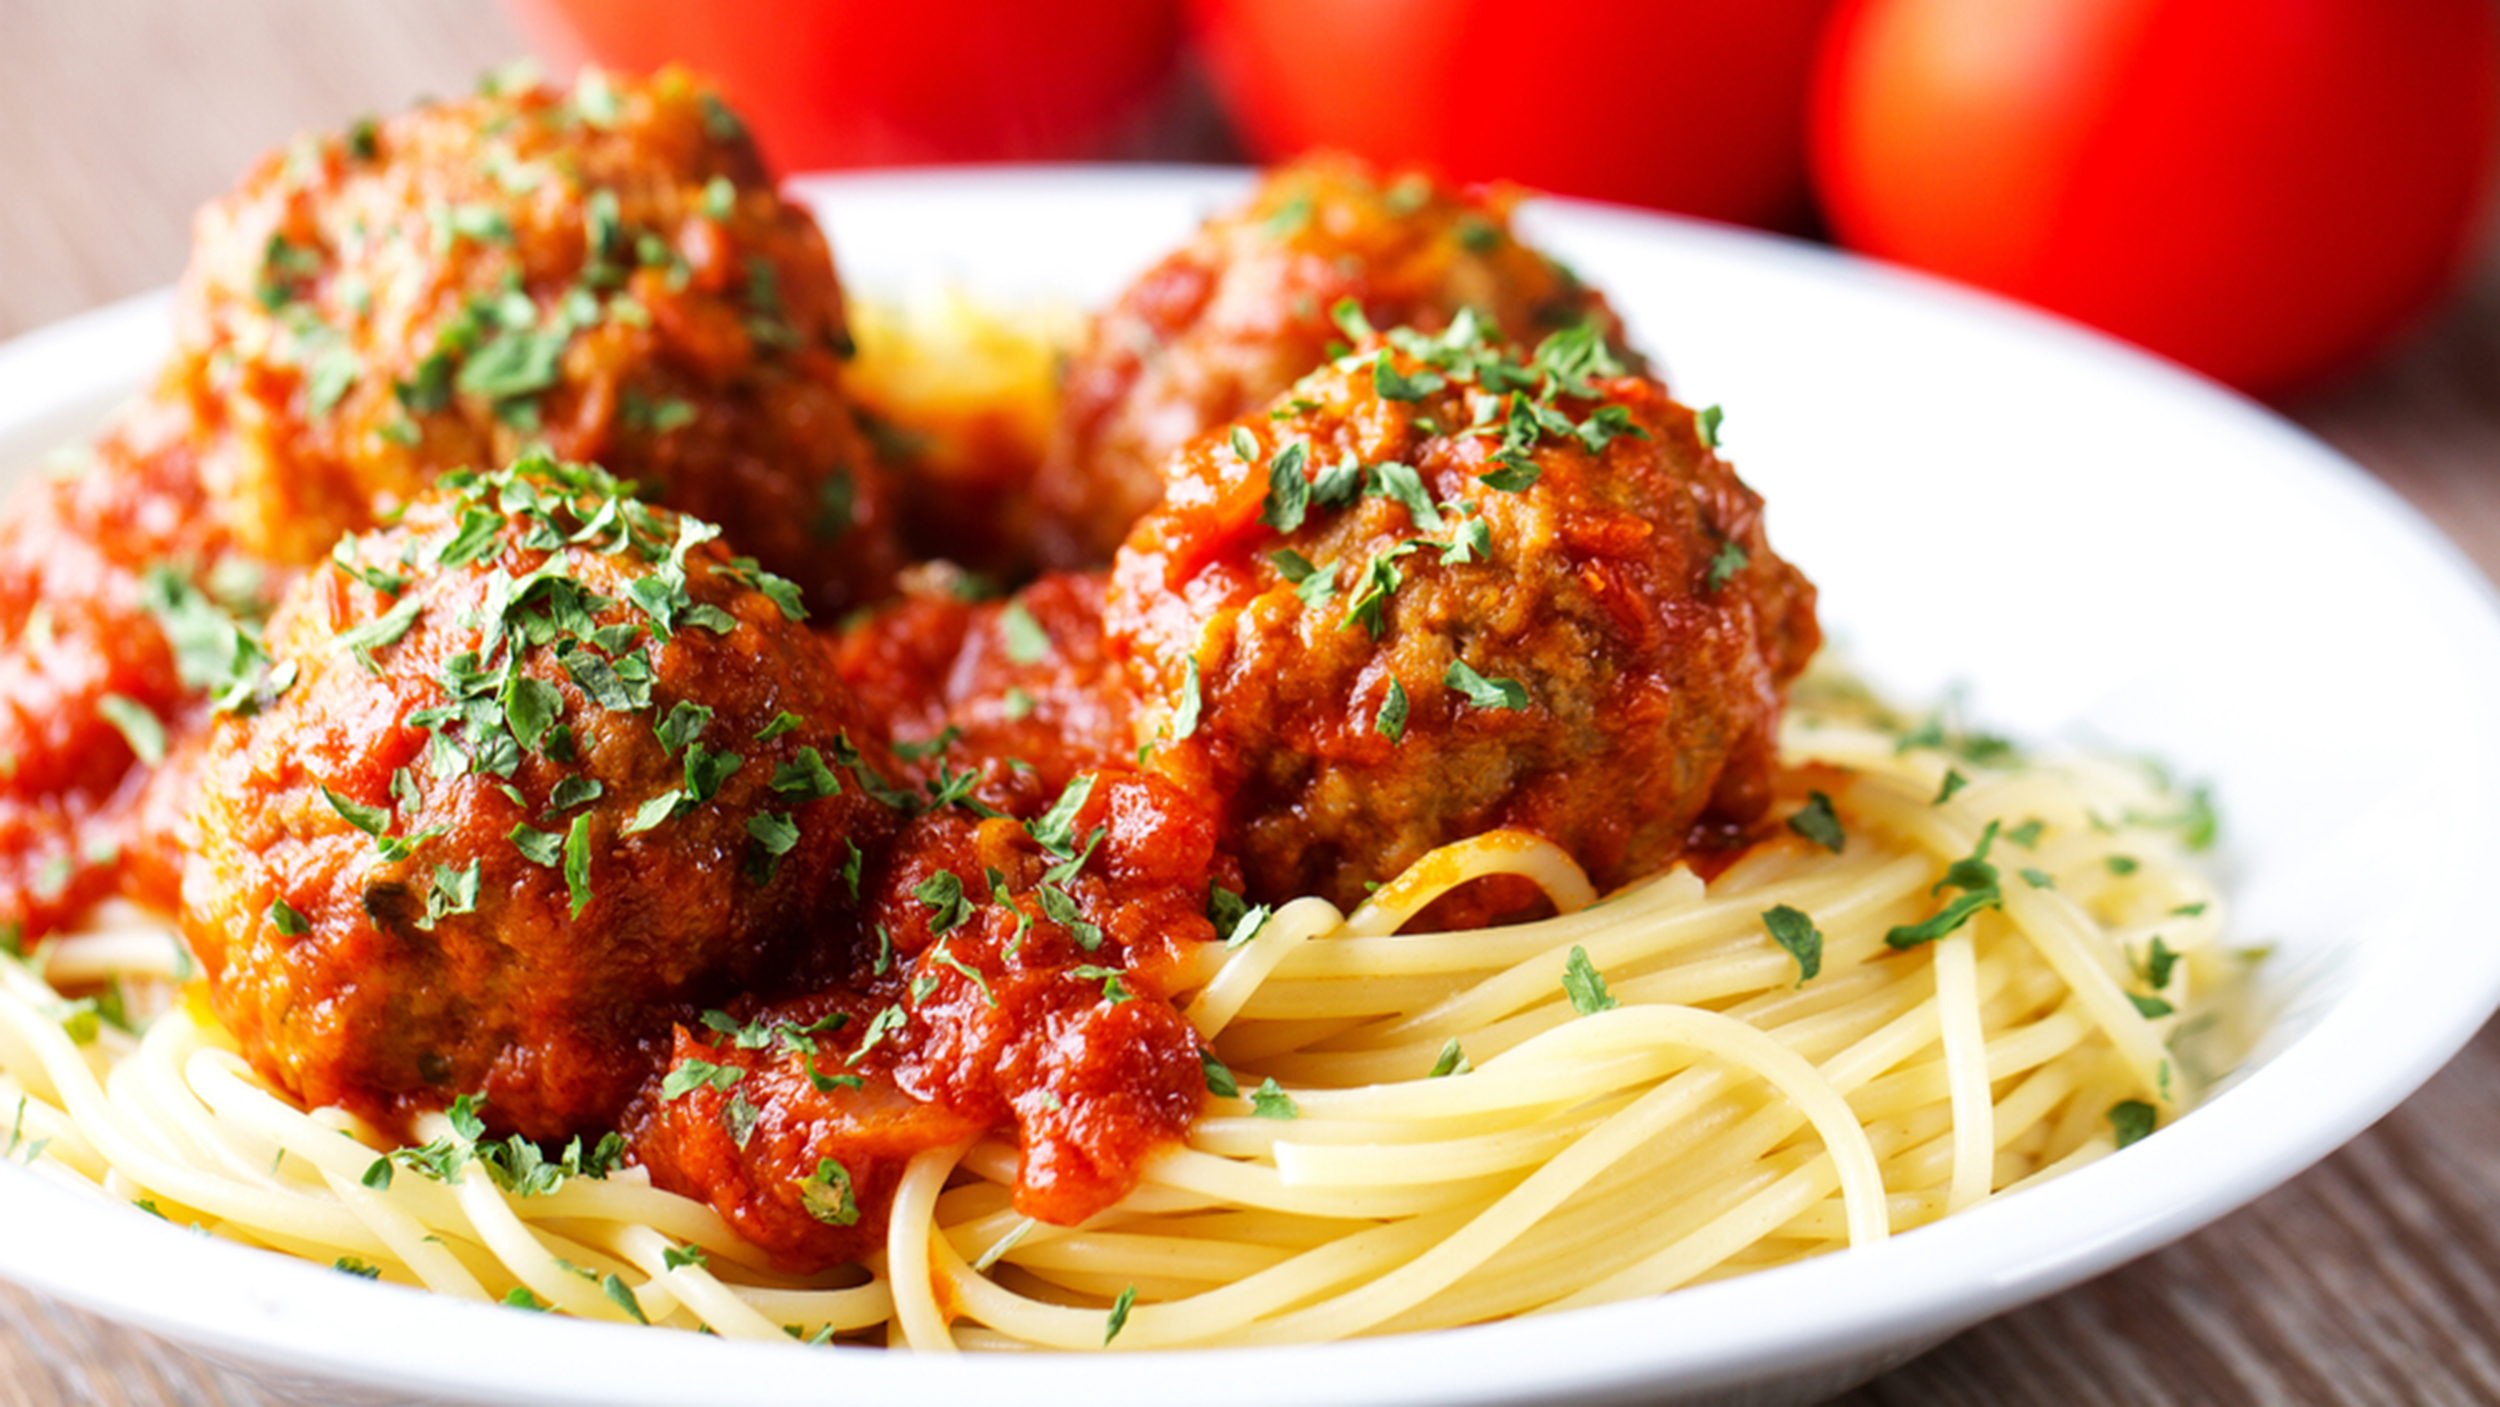 Feb 12,  · Oven baked meatballs are by far the easiest way to cook meatballs. Not only can you cook a lot all at the same time, you can also ensure that they are all cooked evenly throughout and that all of the meatballs are cooked the same. It is also nice that you do Servings: